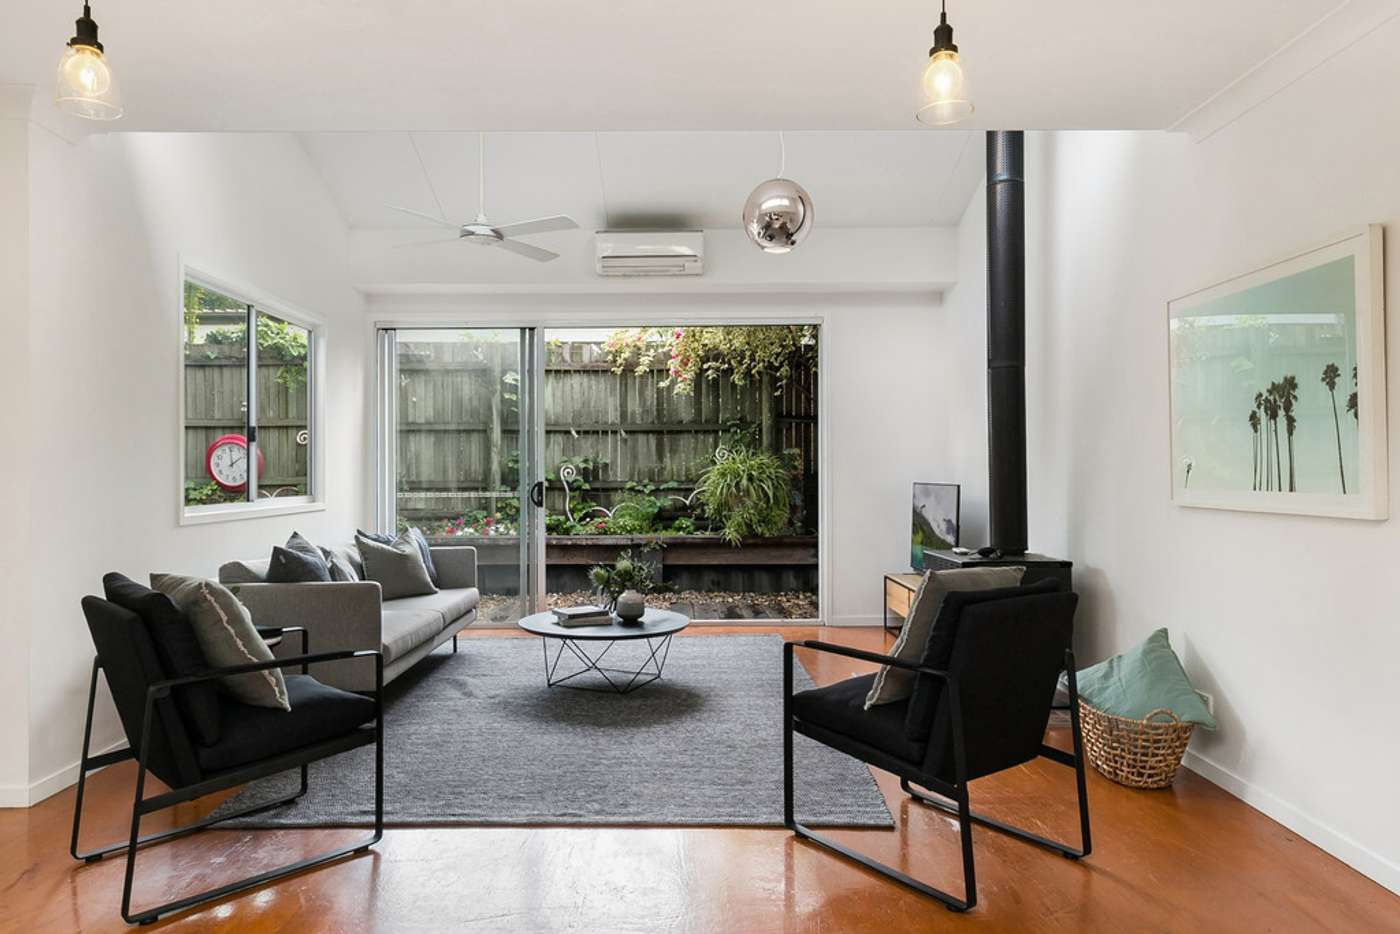 Sixth view of Homely house listing, 72 Marshall Lane, Kenmore QLD 4069